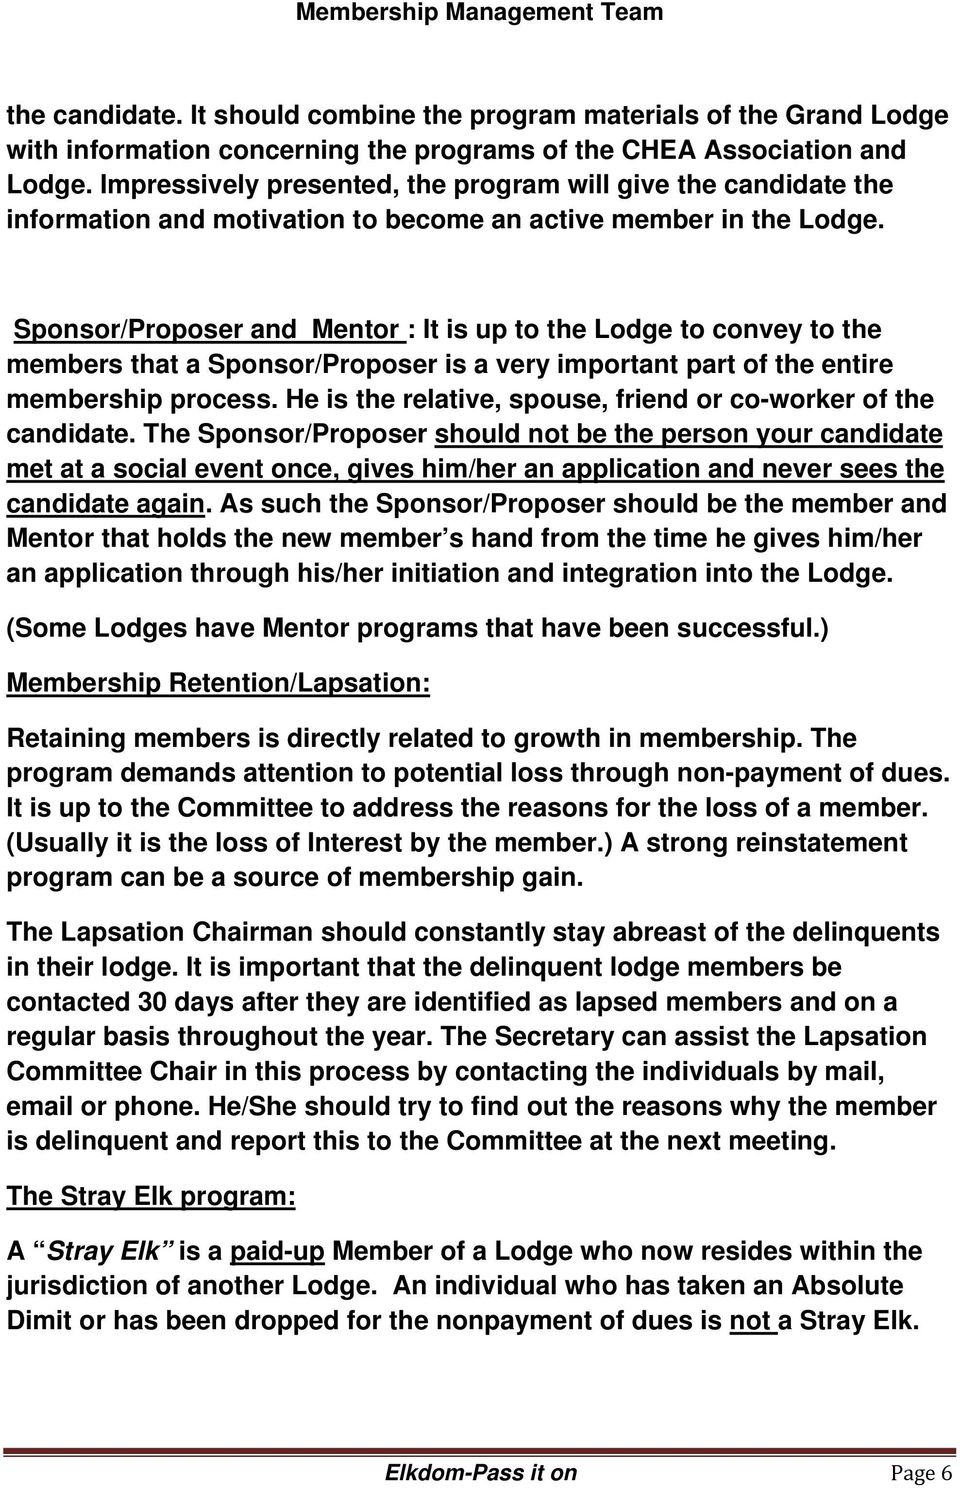 Sponsor/Proposer and Mentor : It is up to the Lodge to convey to the members that a Sponsor/Proposer is a very important part of the entire membership process.